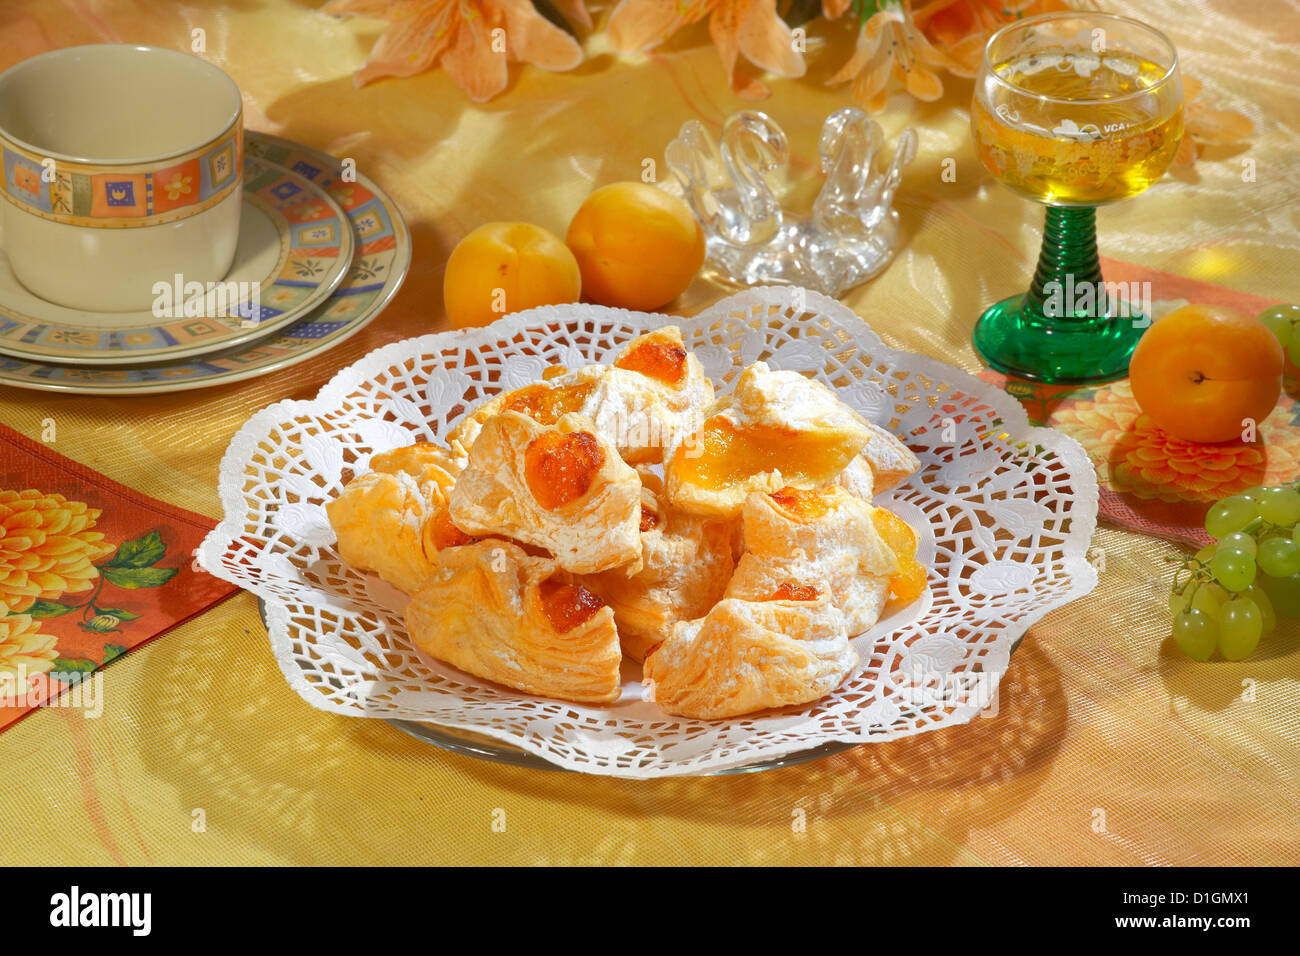 Apricot Cookies - Stock Image